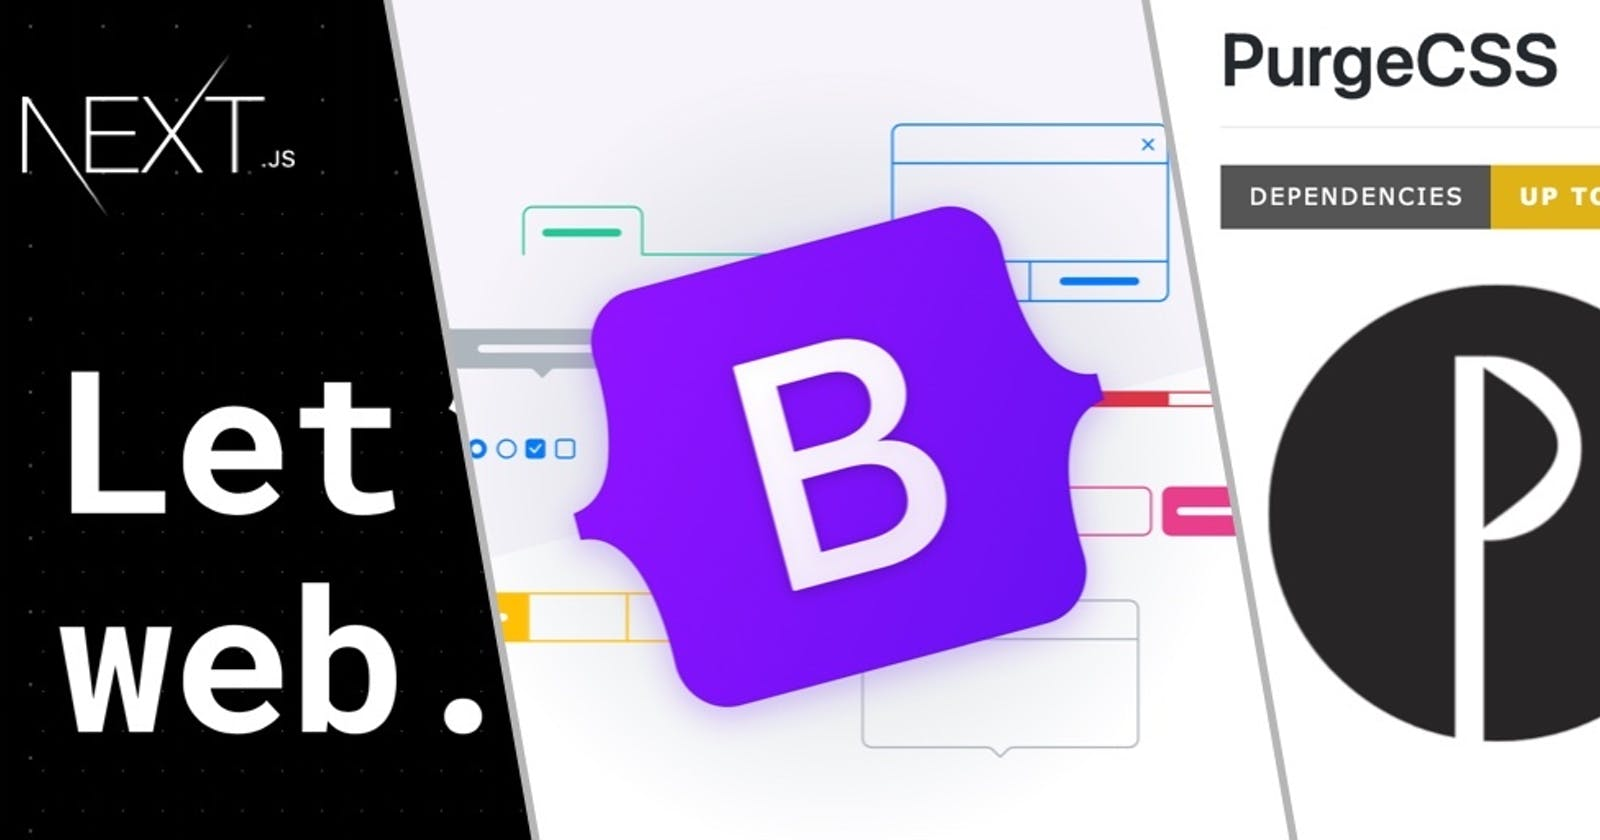 Speedy and Stylish - How to style NextJS with Bootstrap 5, SASS, and PurgeCSS